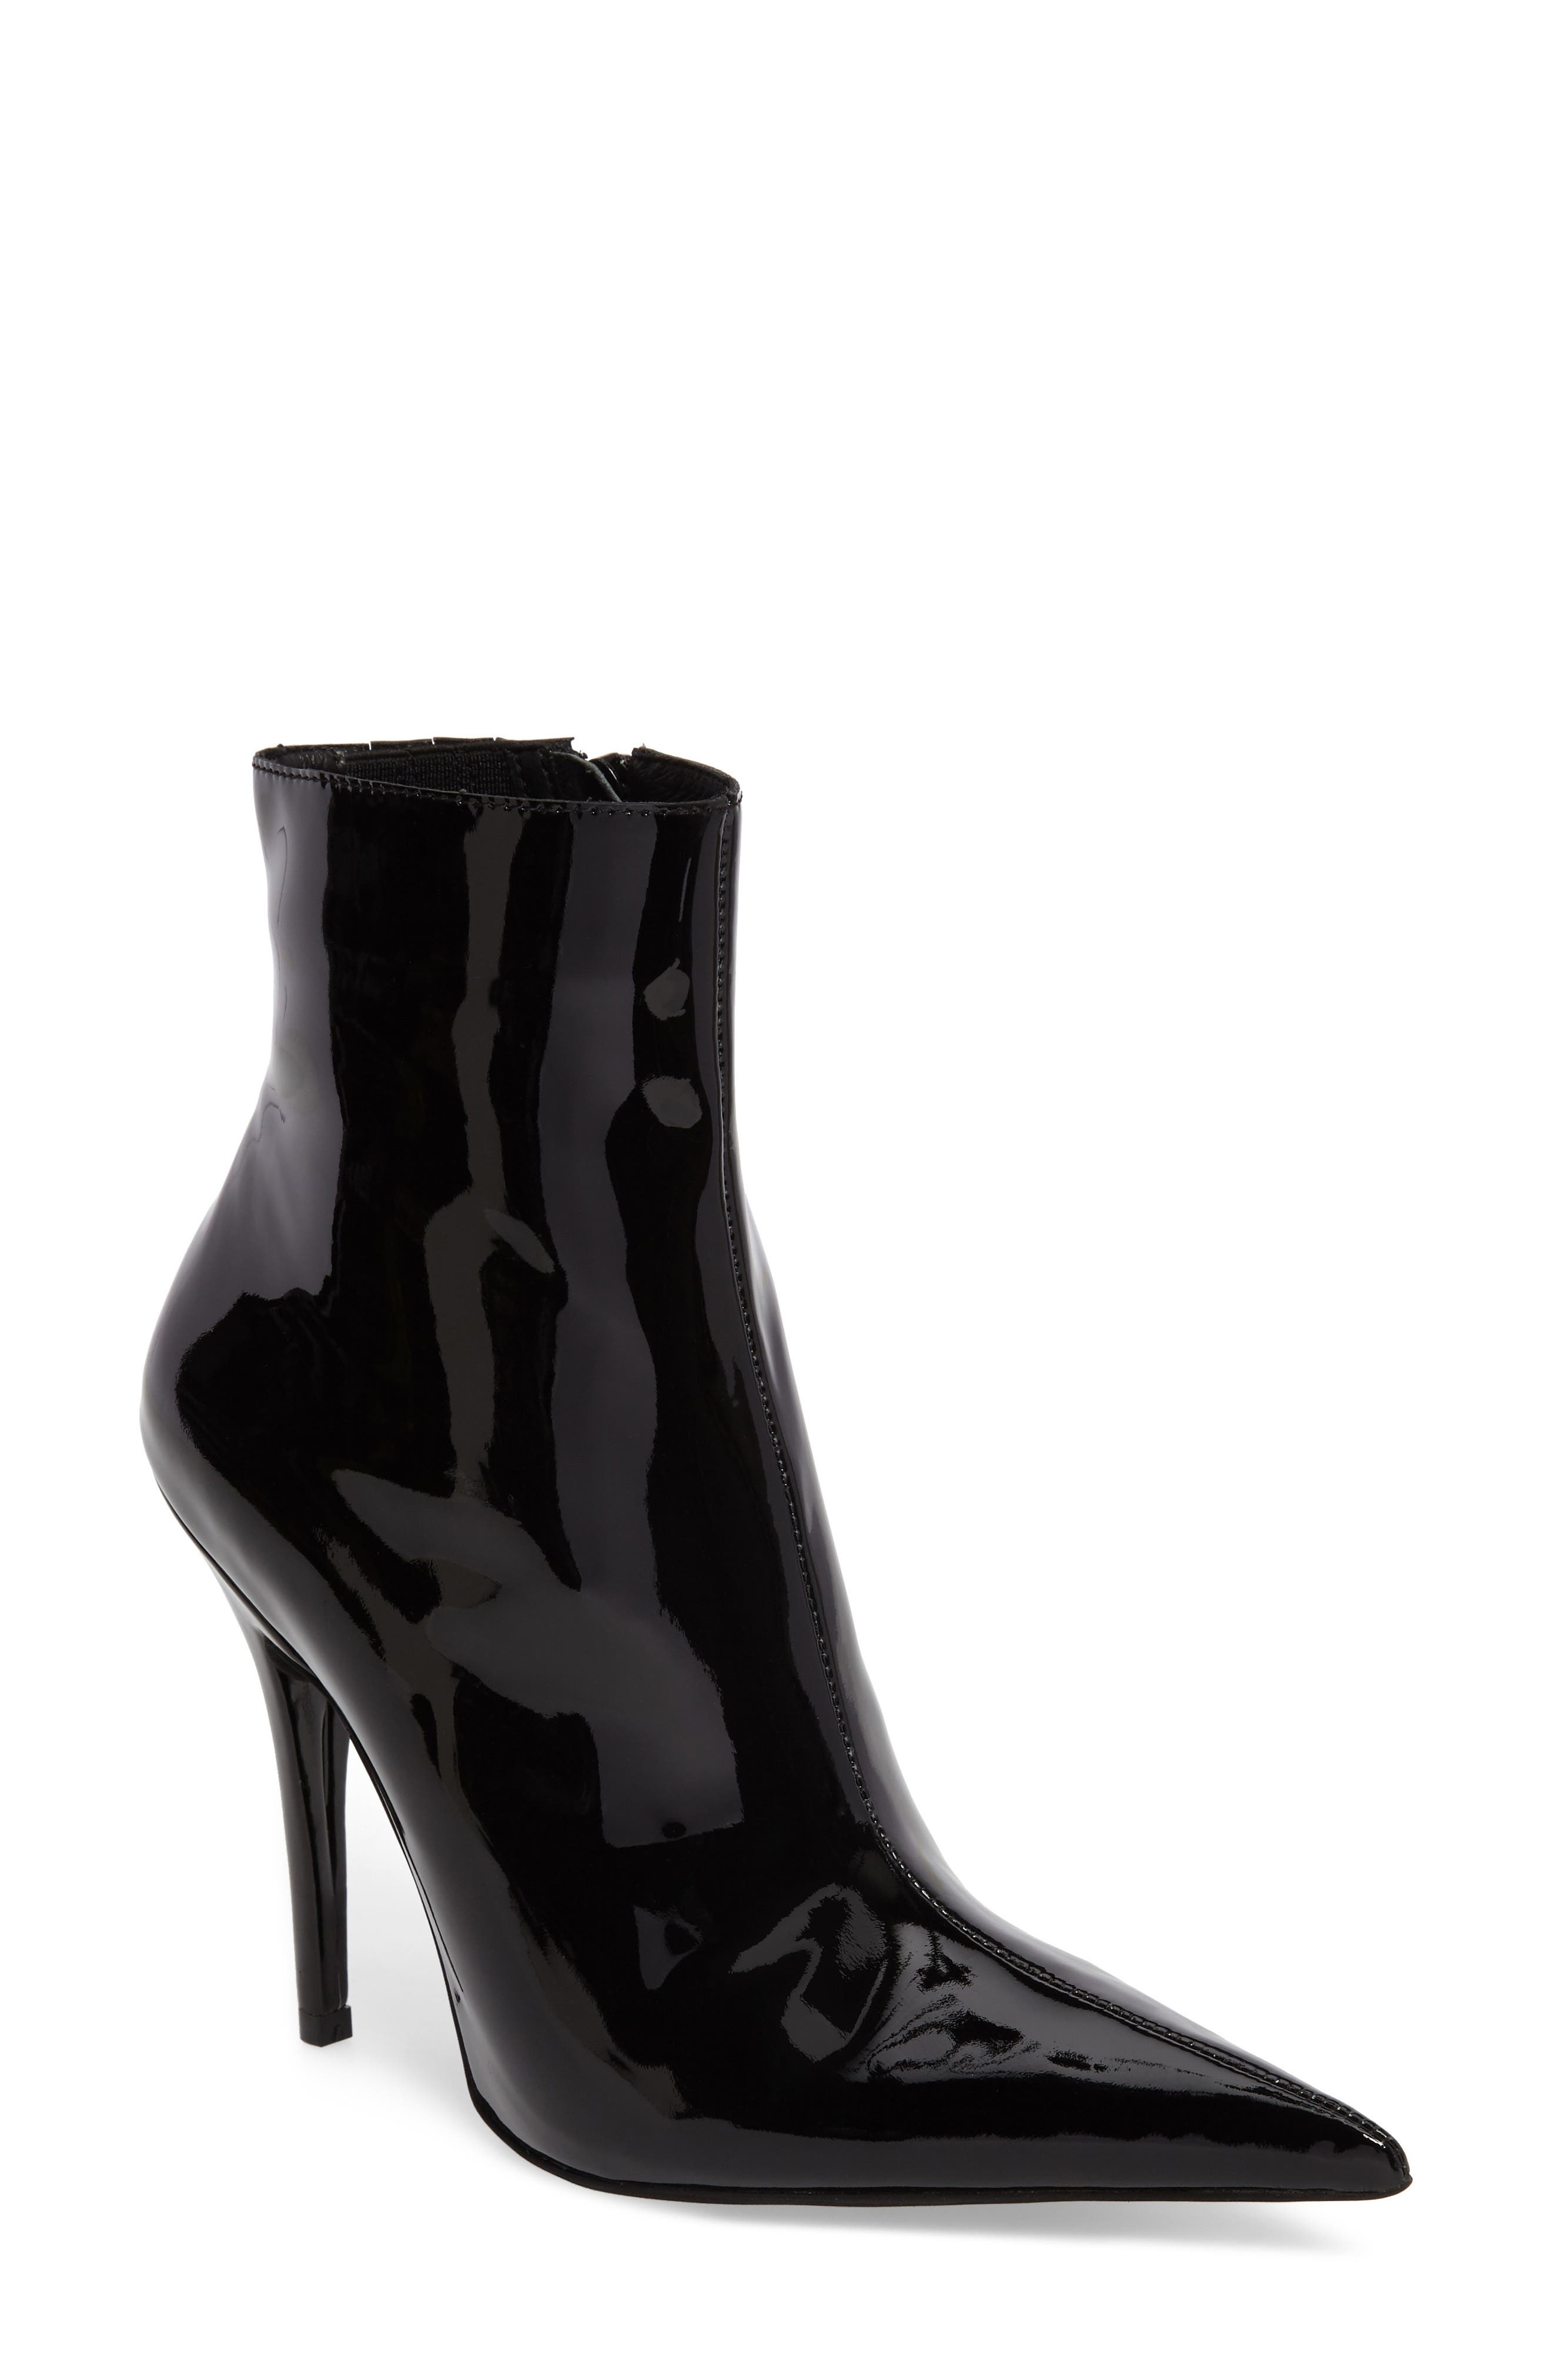 Vedette Pointy Toe Booties,                             Main thumbnail 1, color,                             001